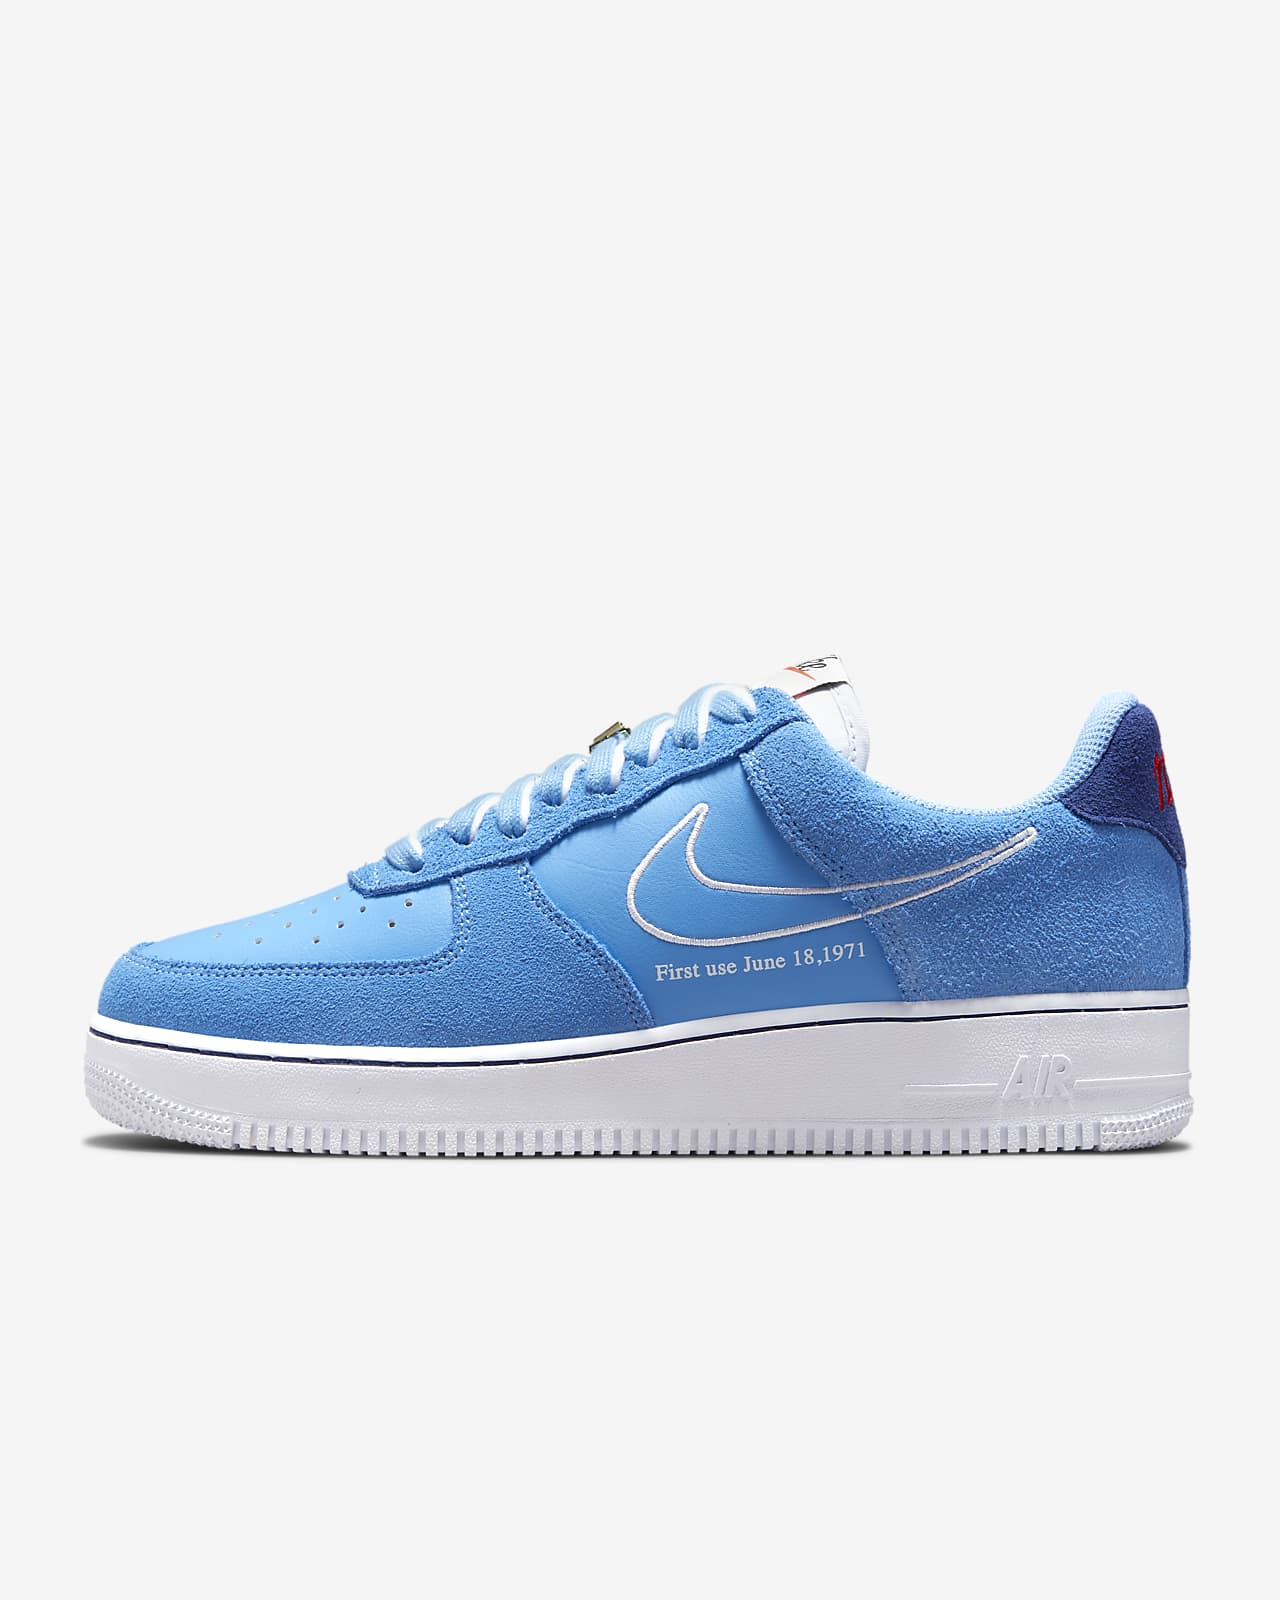 Nike Air Force 1 '07 LV8 First Use 'University Blue'